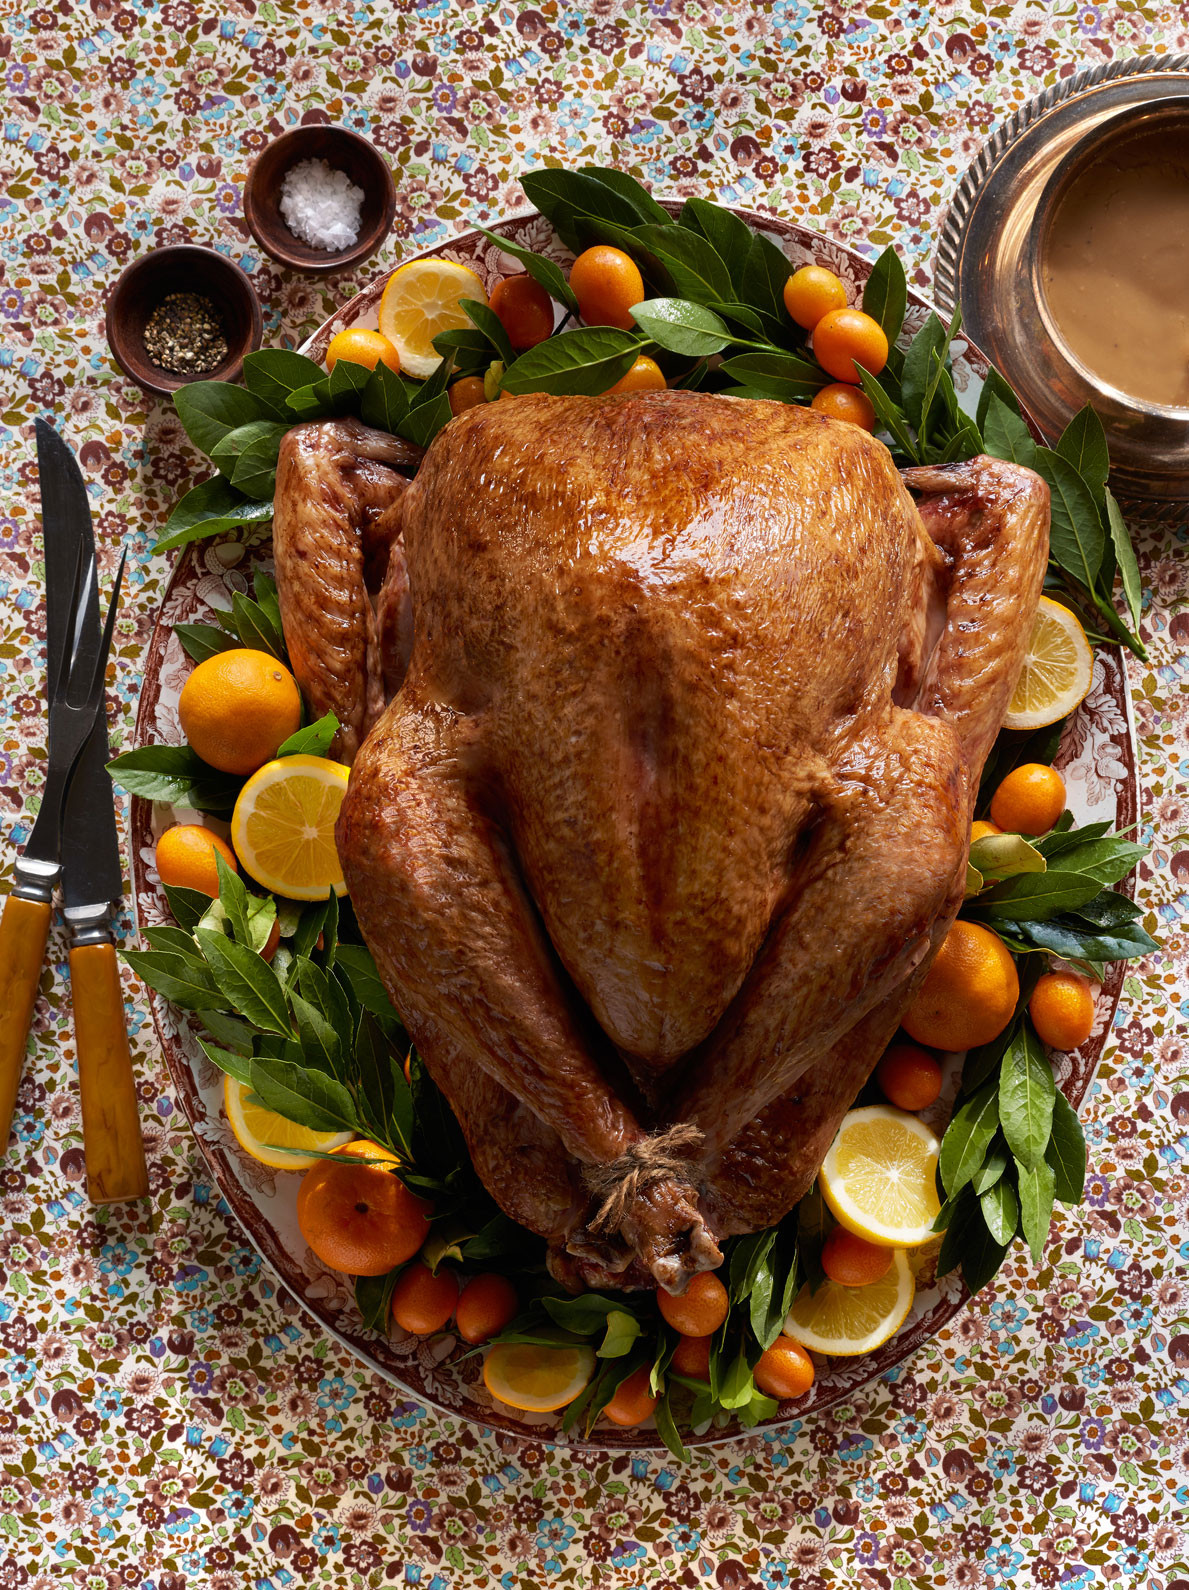 Turkey Pictures For Thanksgiving  25 Best Thanksgiving Turkey Recipes How To Cook Turkey